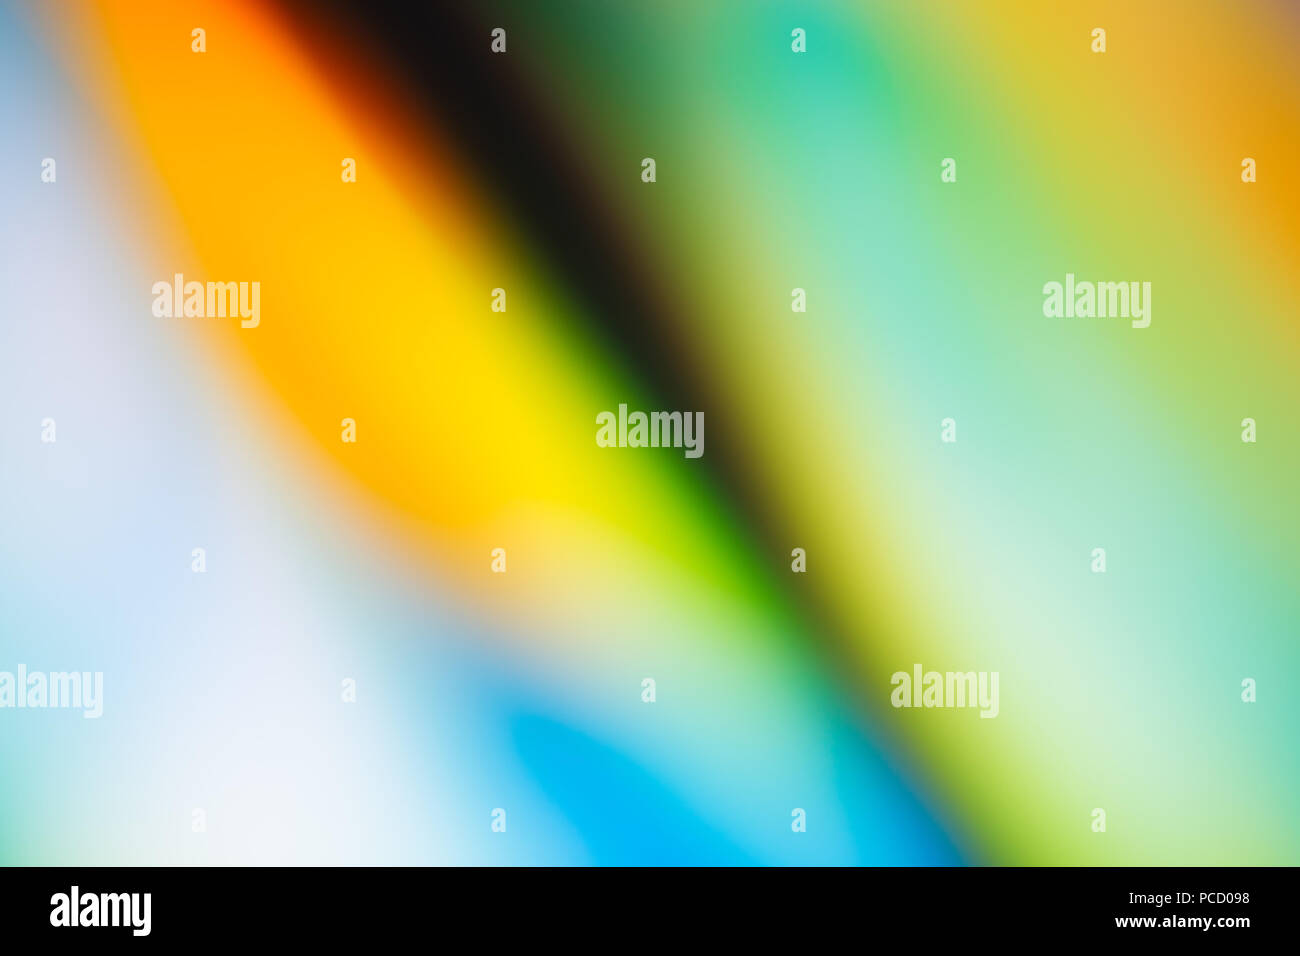 Abstract Blurred Photograph - Stock Image